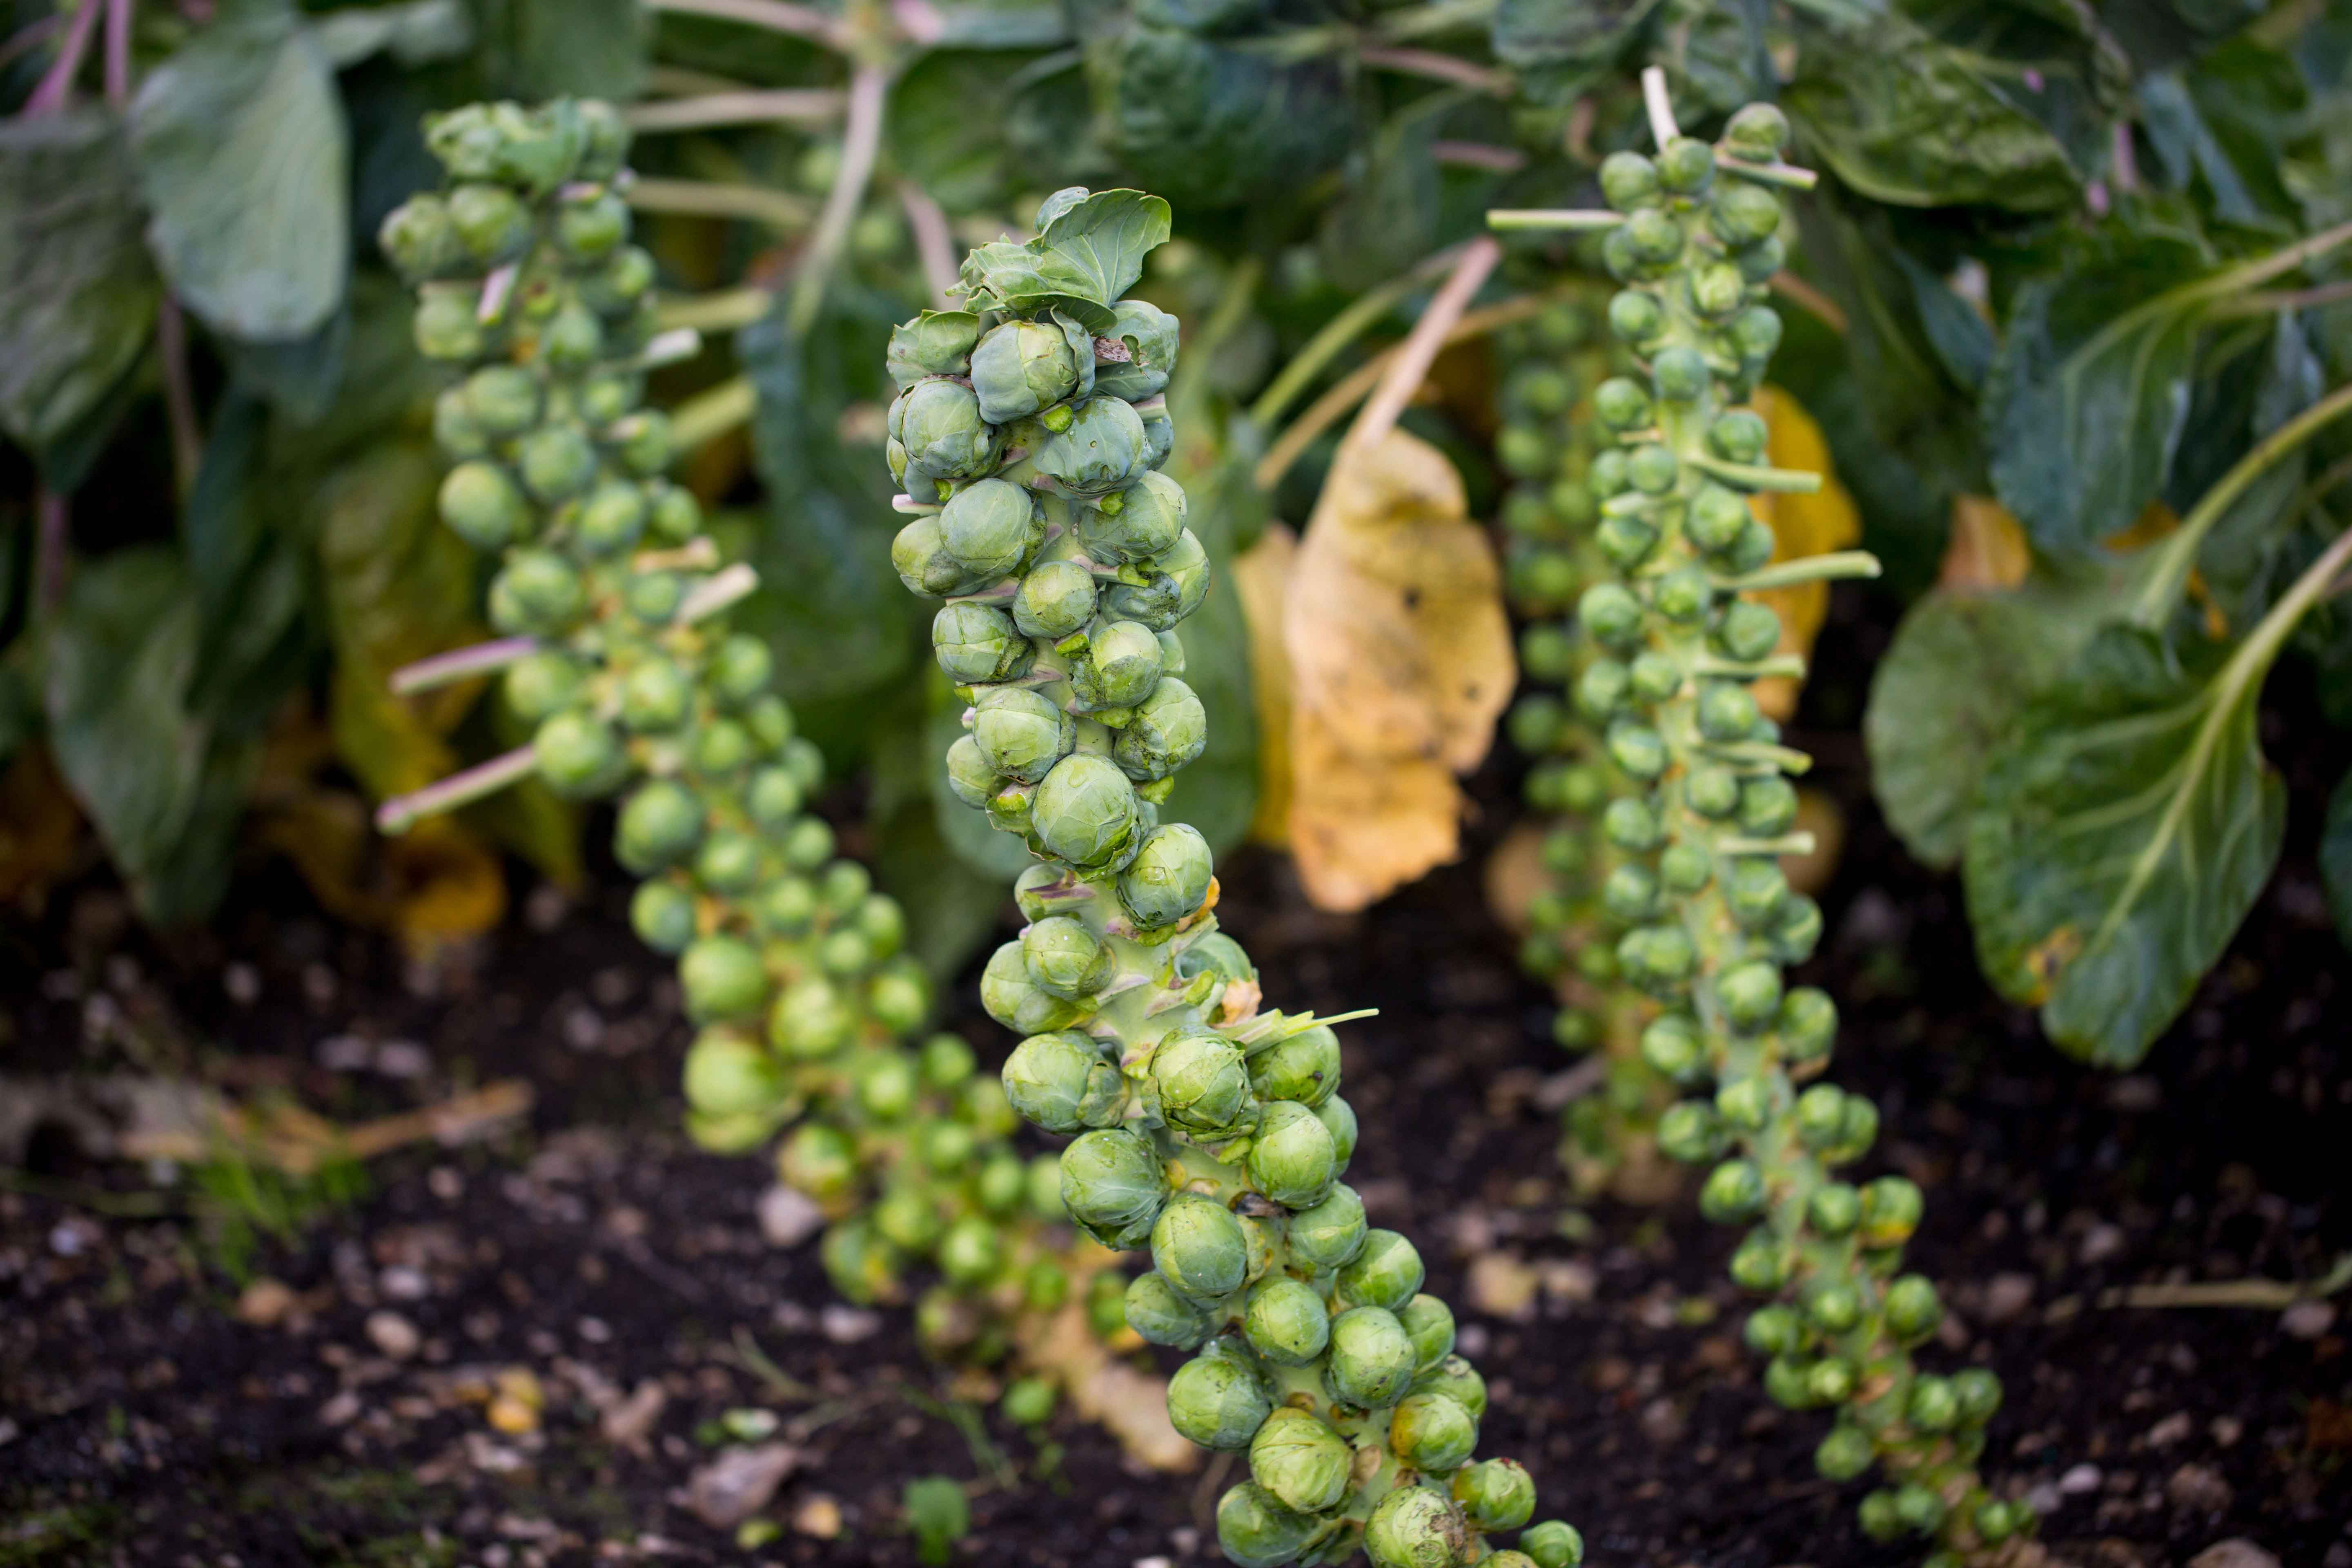 Brussels-Sprouts-Still-on-the-Stem